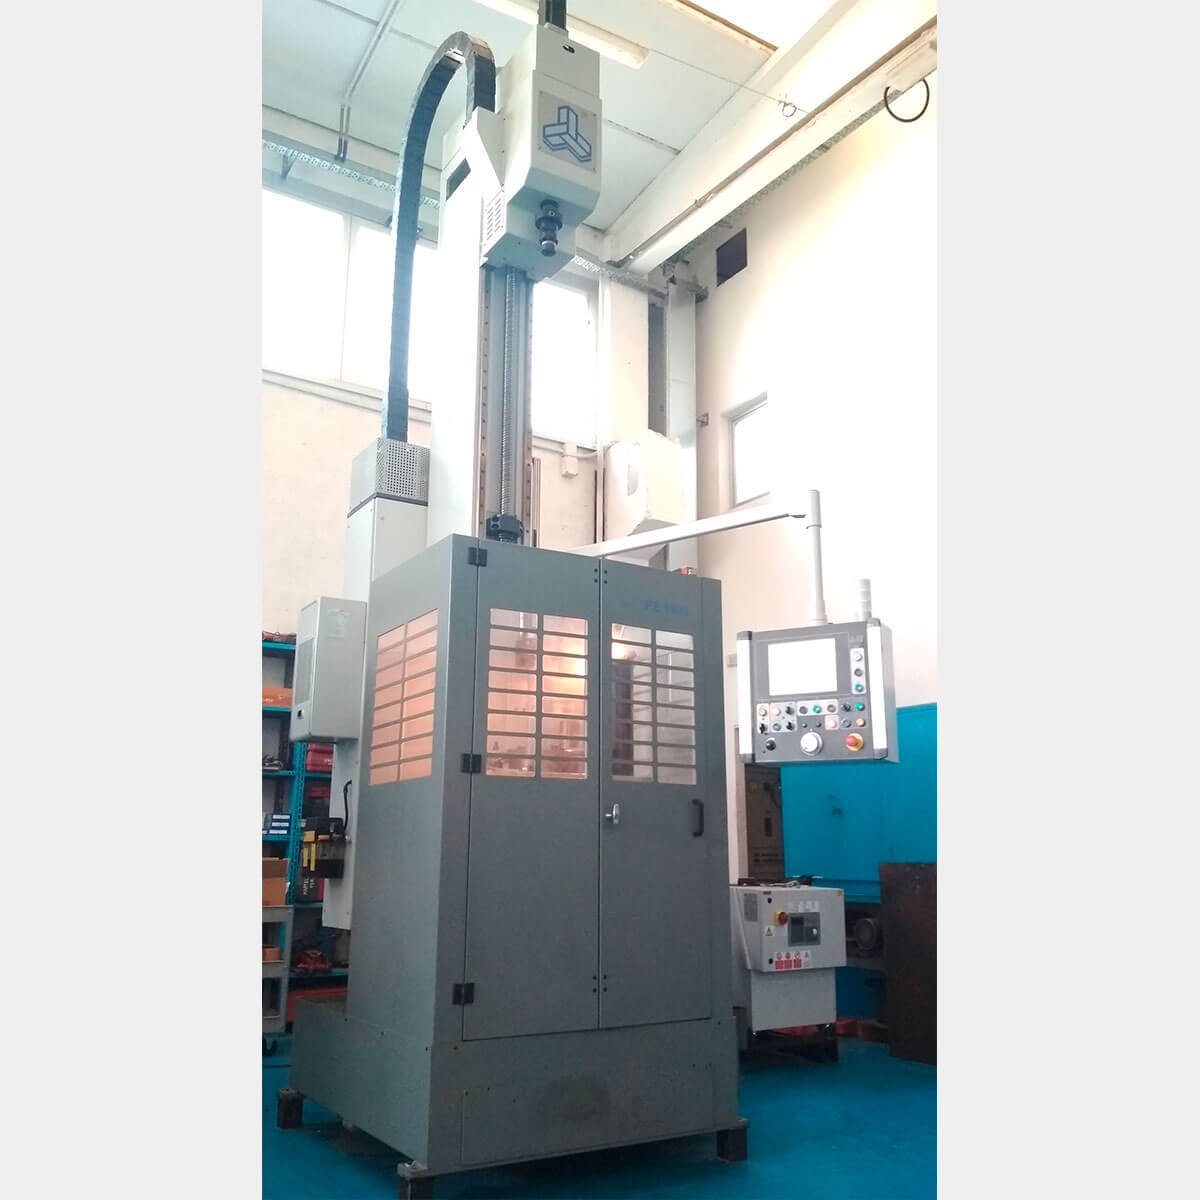 CAR PE-1500 CNC Vertical Honing Machine